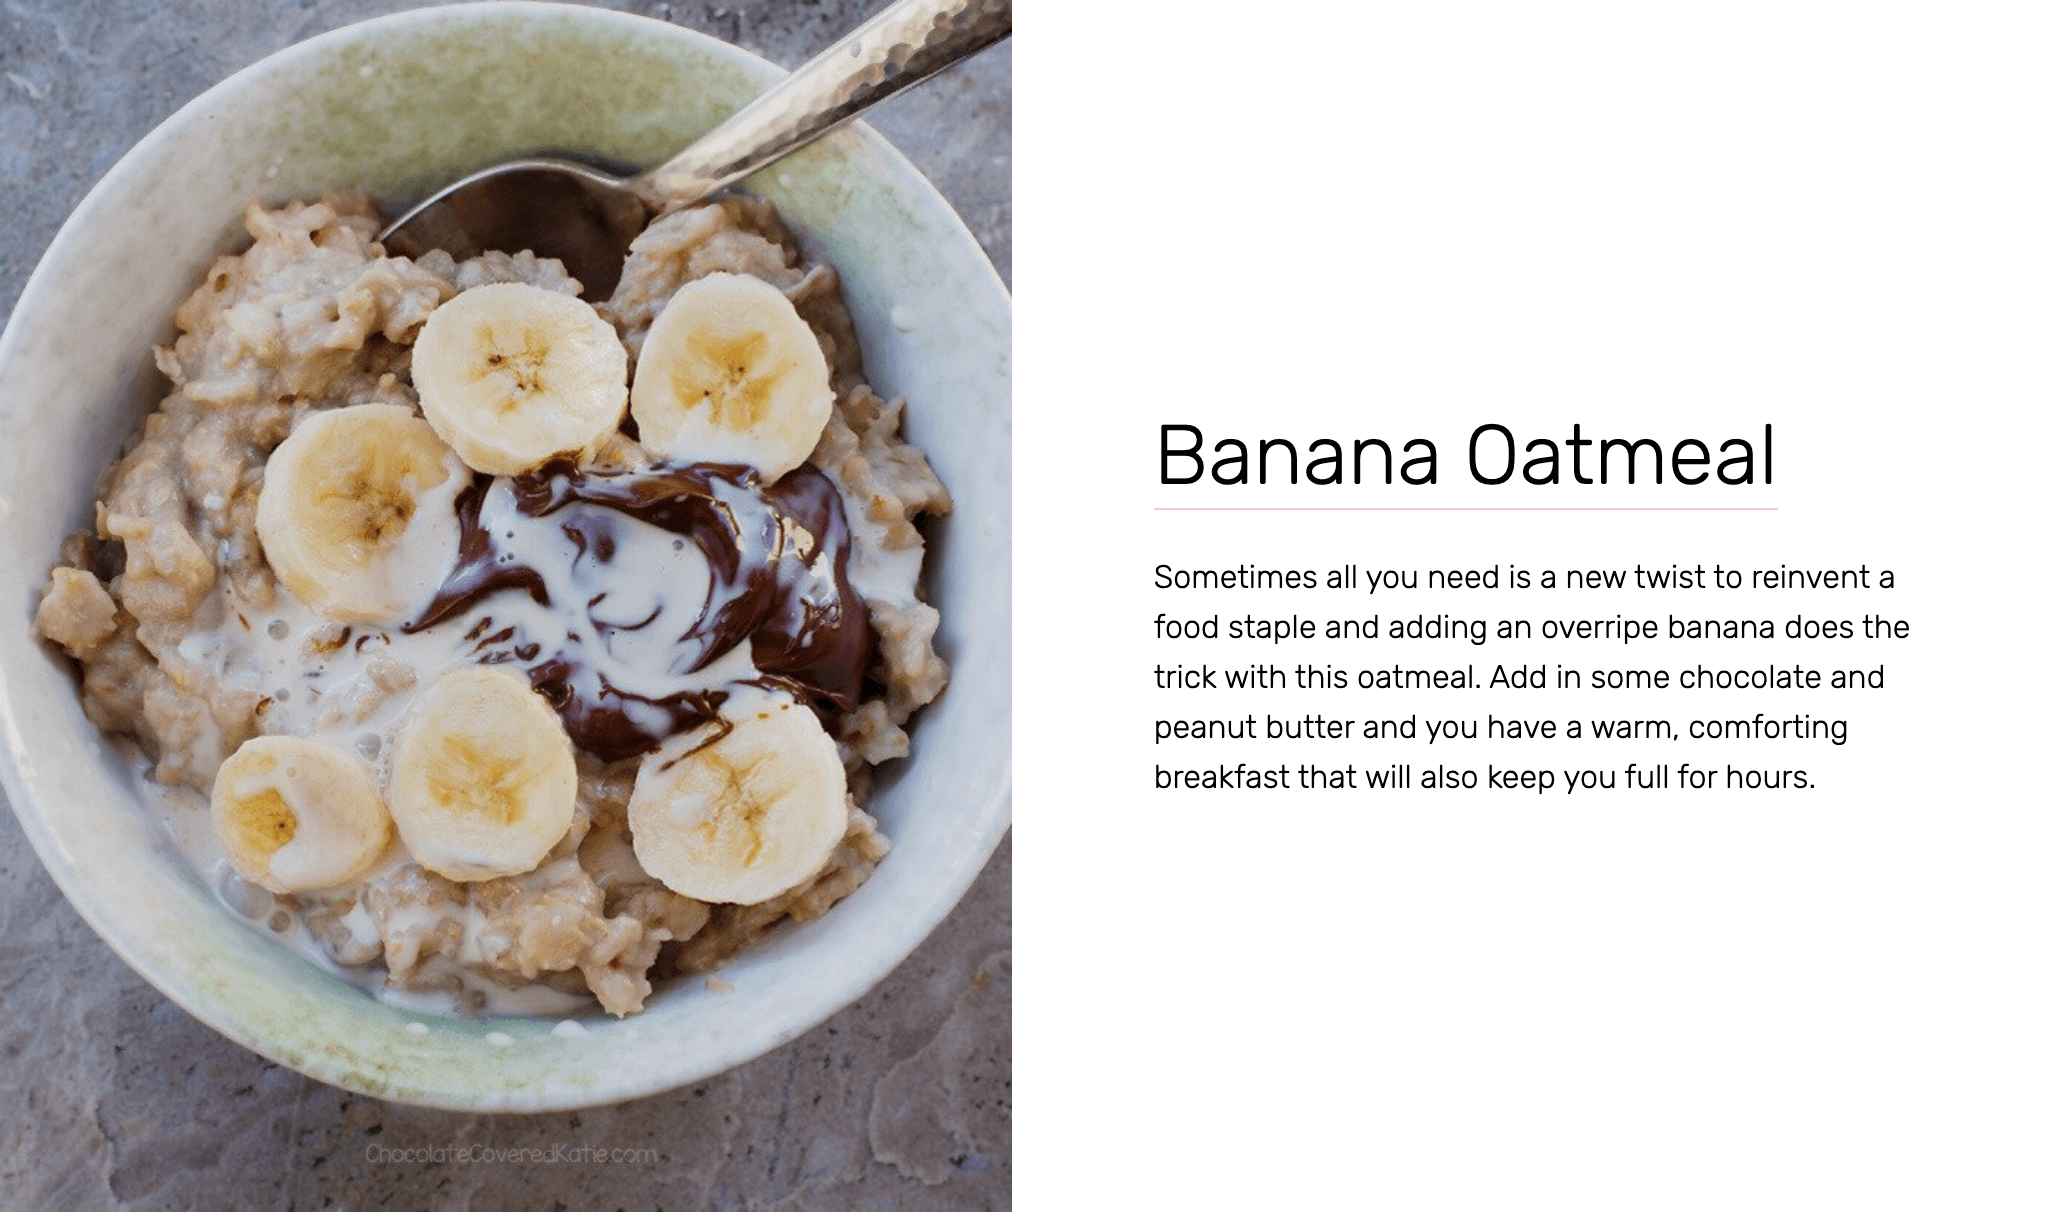 Banana Oatmeal - Sometimes all you need is a new twist to reinvent a food staple and adding an overripe banana does the trick with this oatmeal. Add in some chocolate and peanut butter and you have a warm, comforting breakfast that will also keep you full for hours.